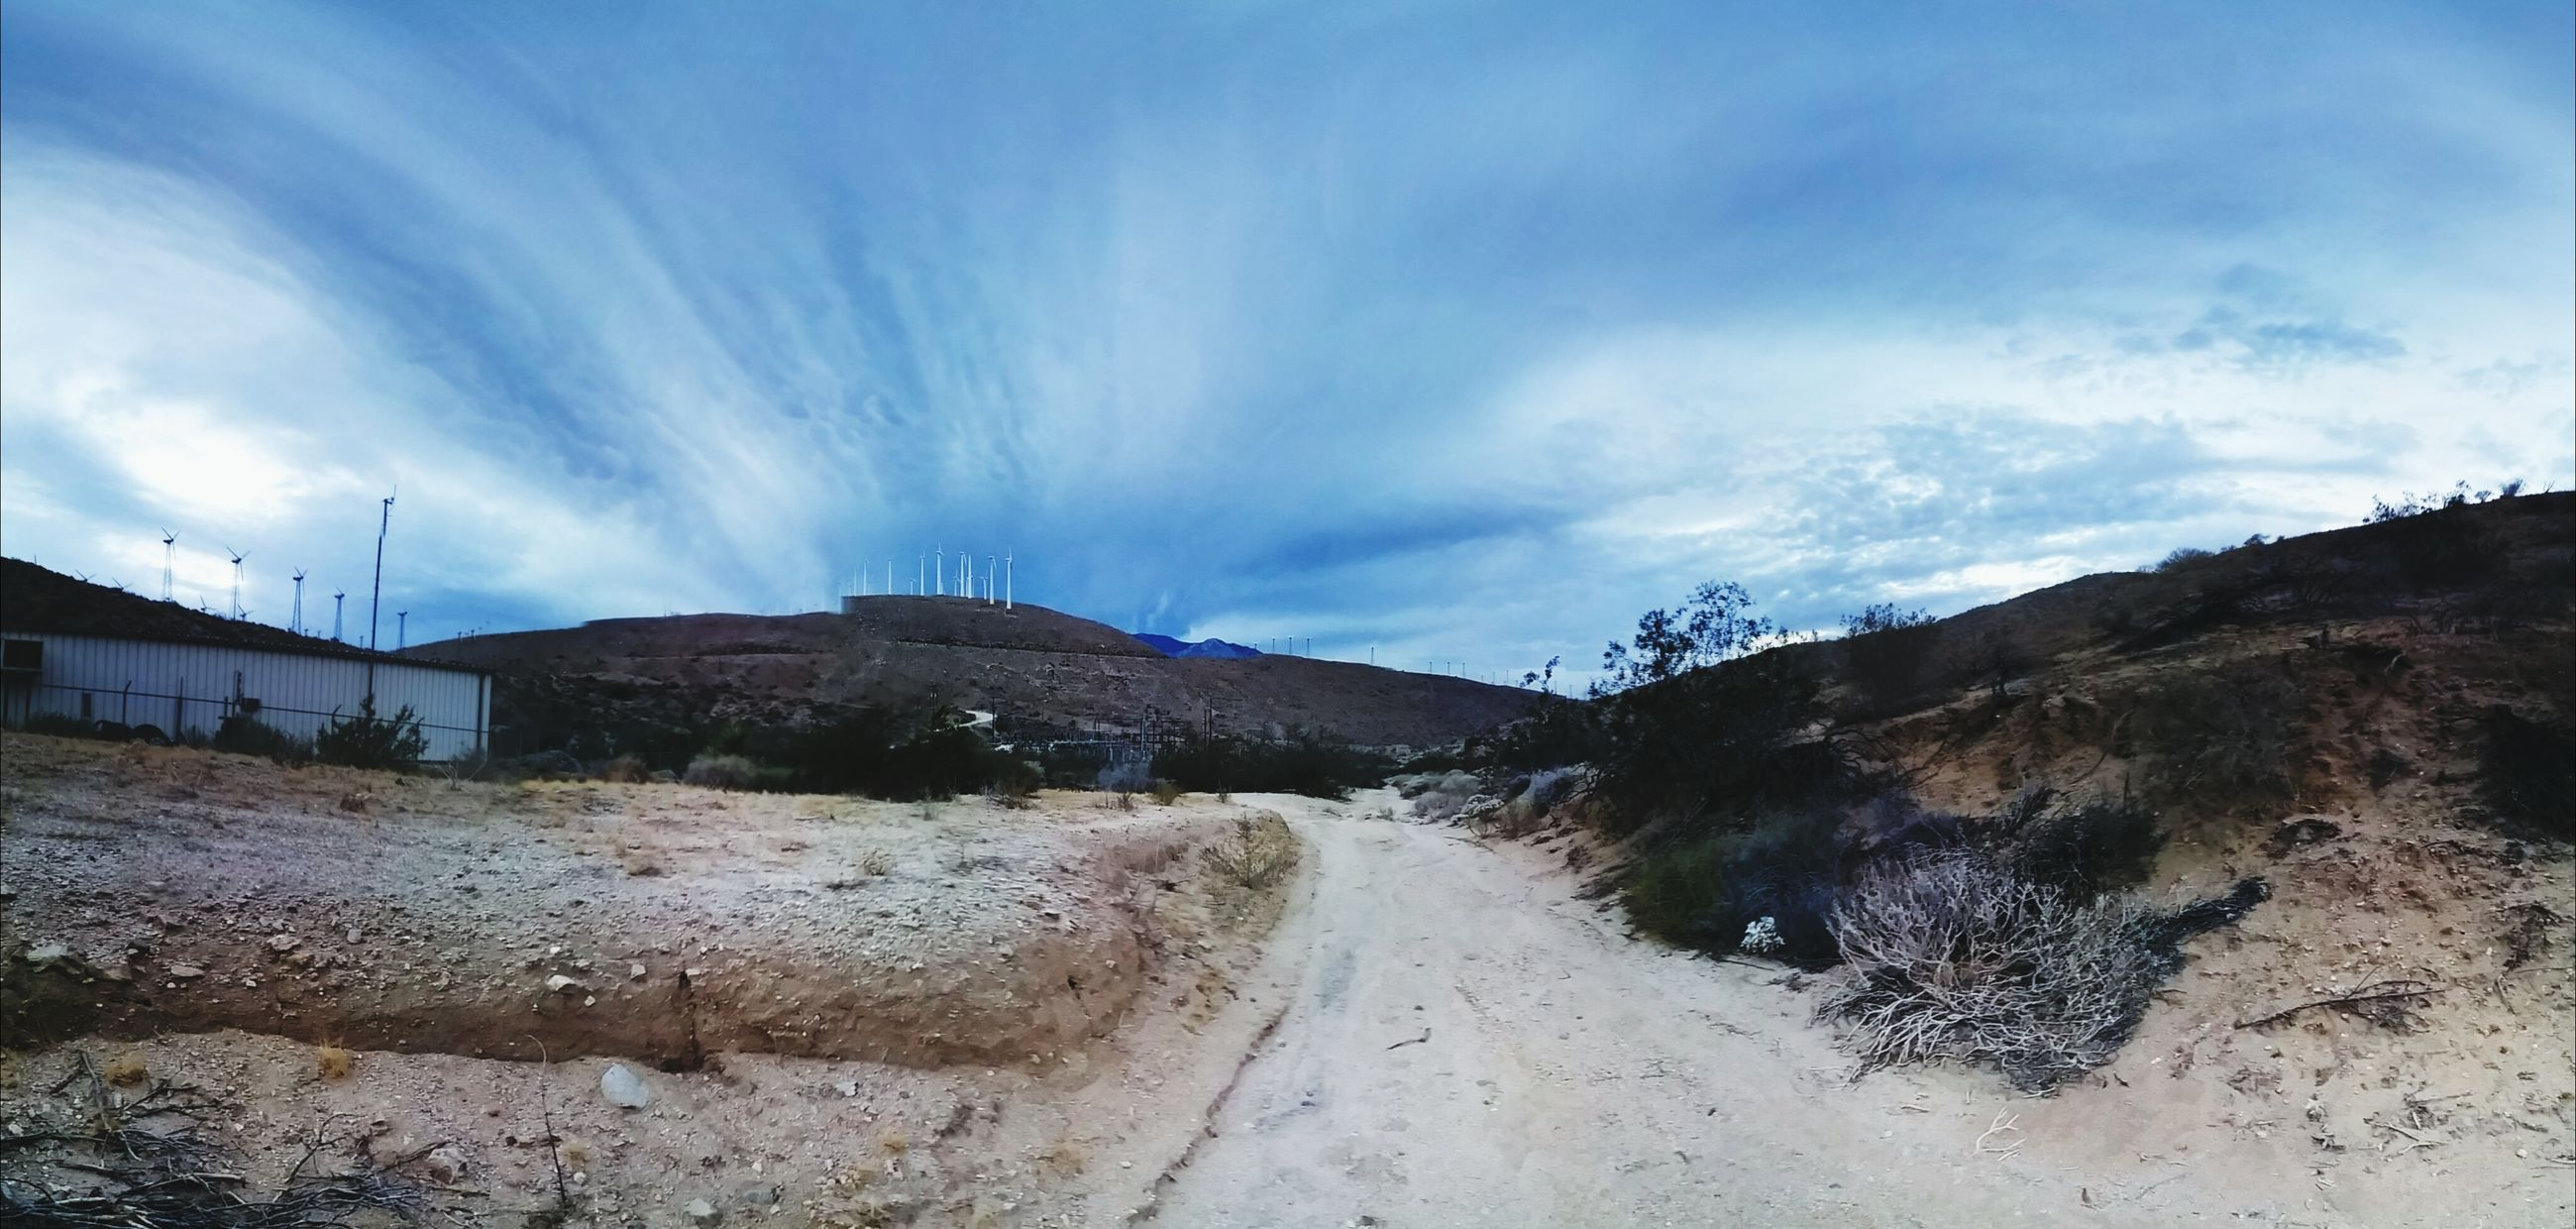 sky, cloud - sky, cloud, cloudy, the way forward, road, mountain, dirt road, built structure, landscape, building exterior, architecture, nature, house, tranquil scene, tranquility, weather, day, scenics, street